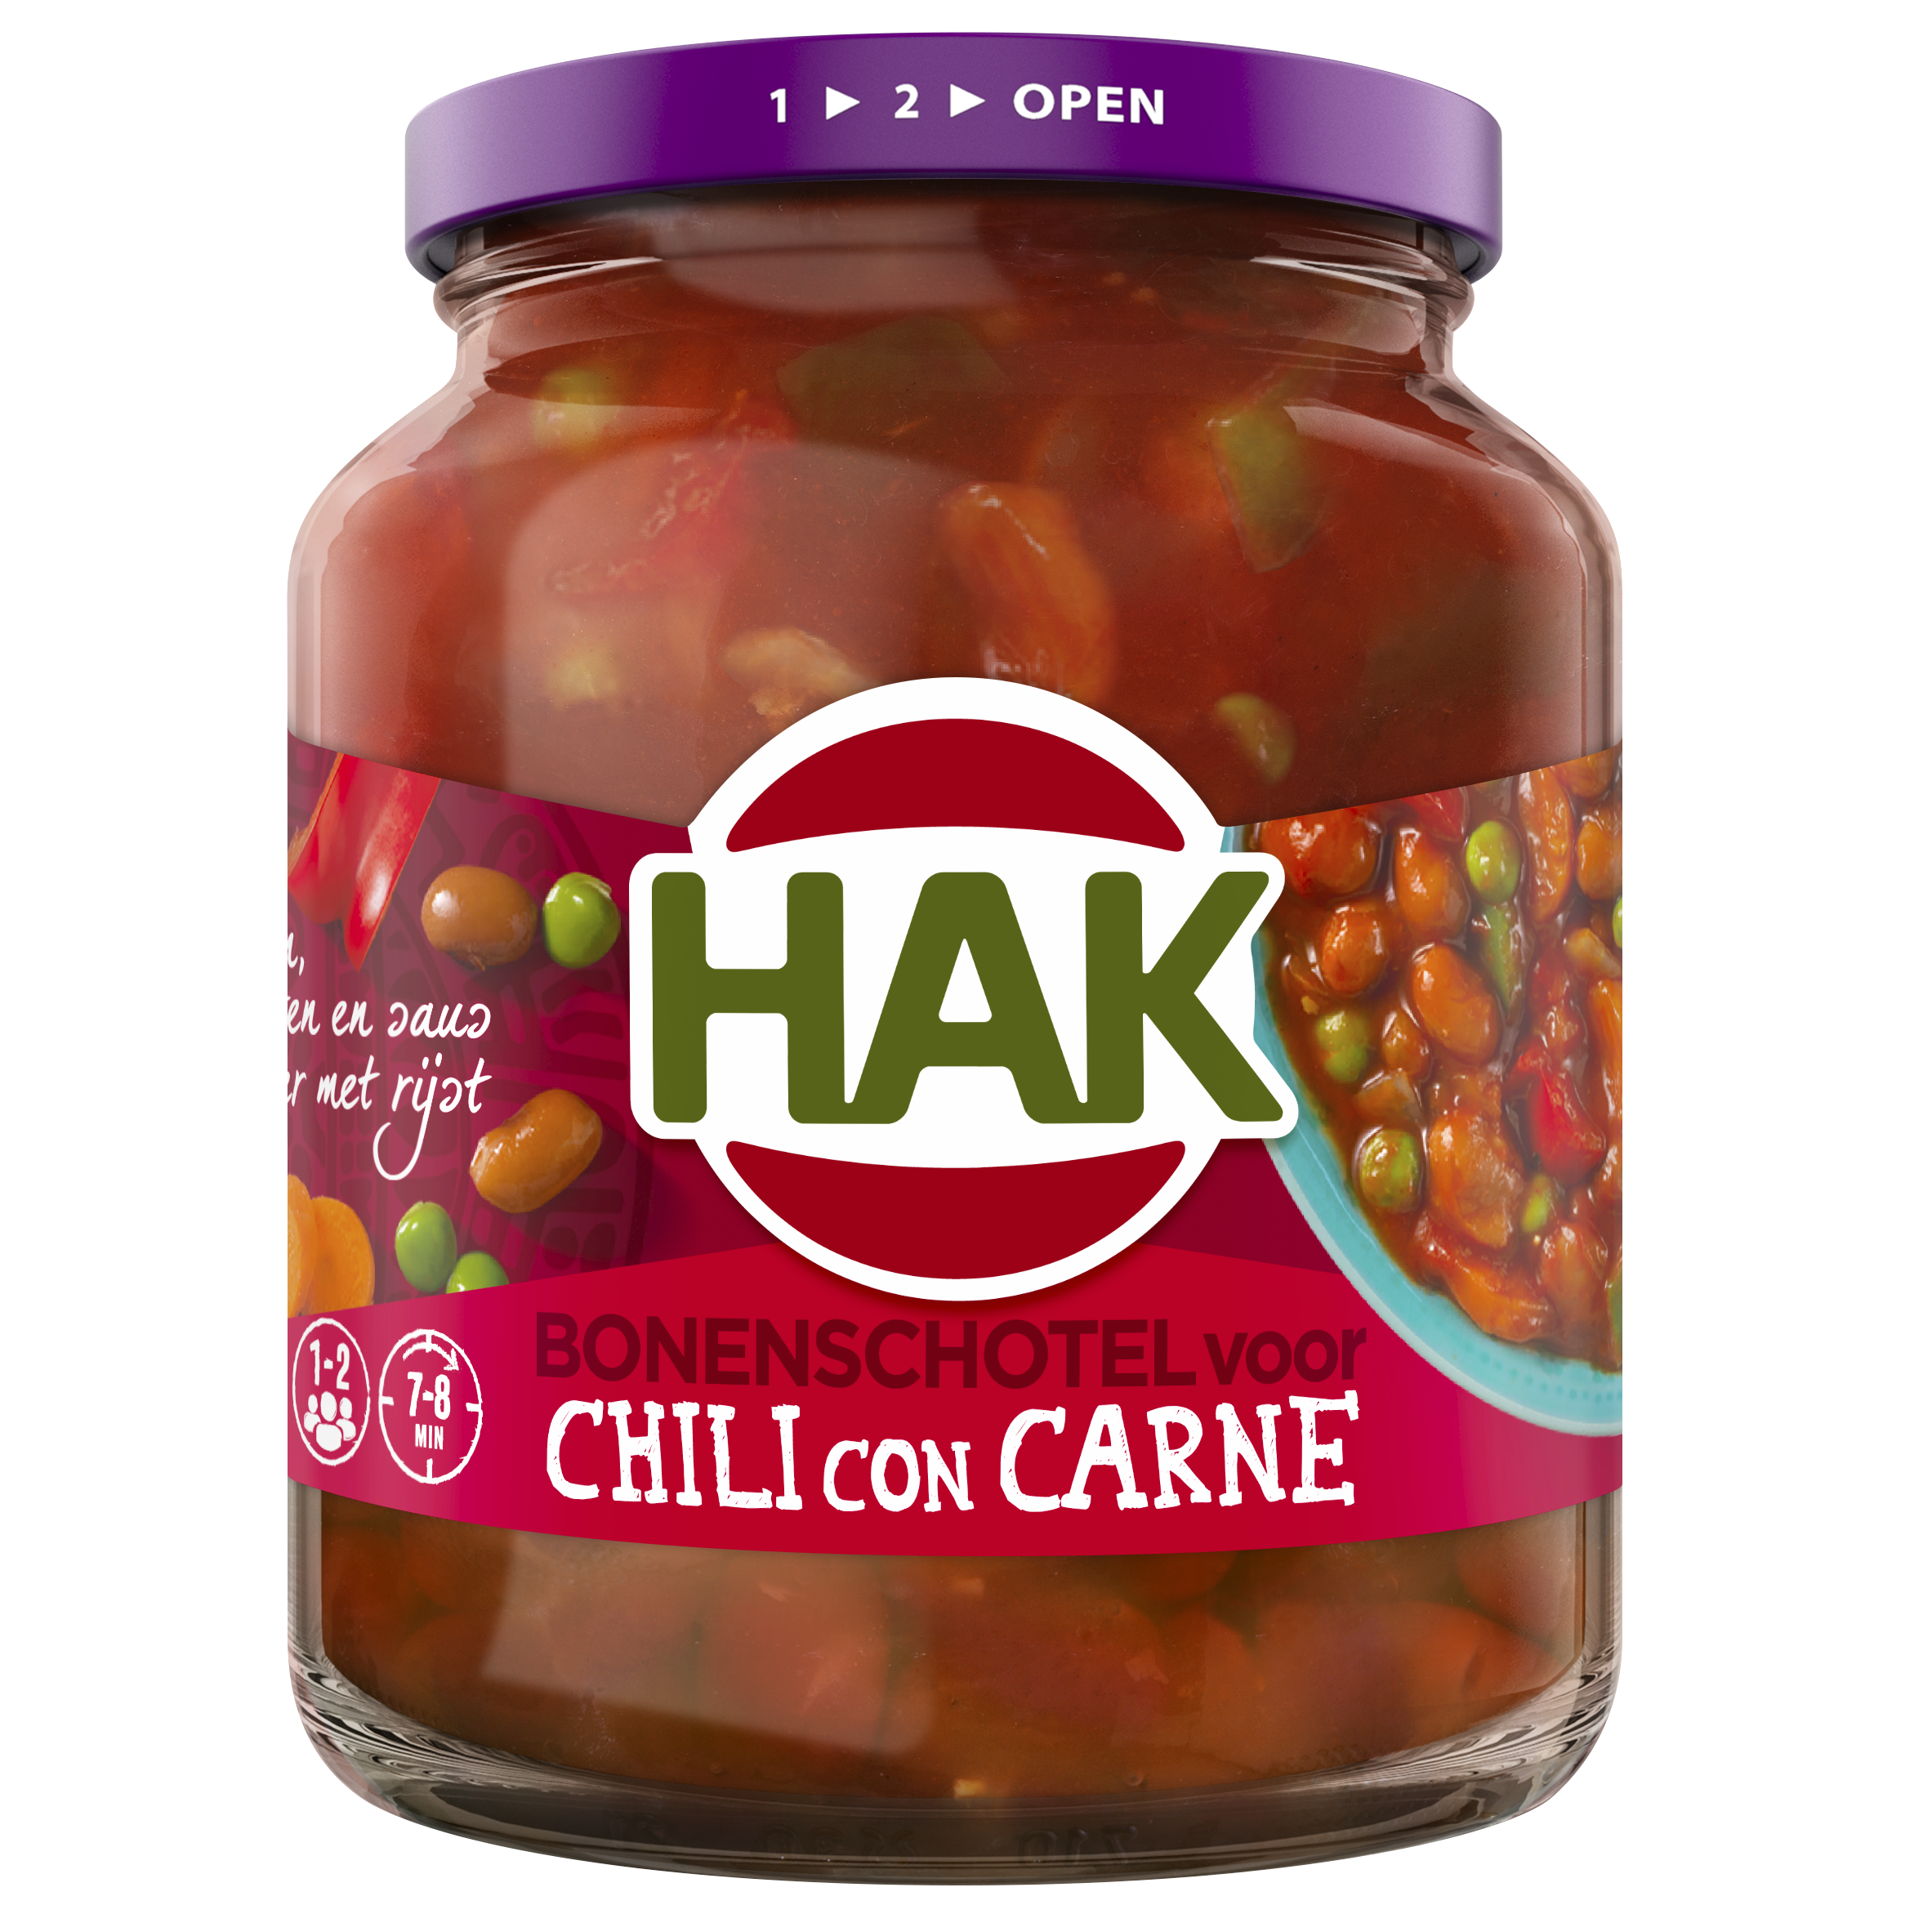 Hak Bs Chili Con Carne 370 Nl 8720600610783 1710151 Front